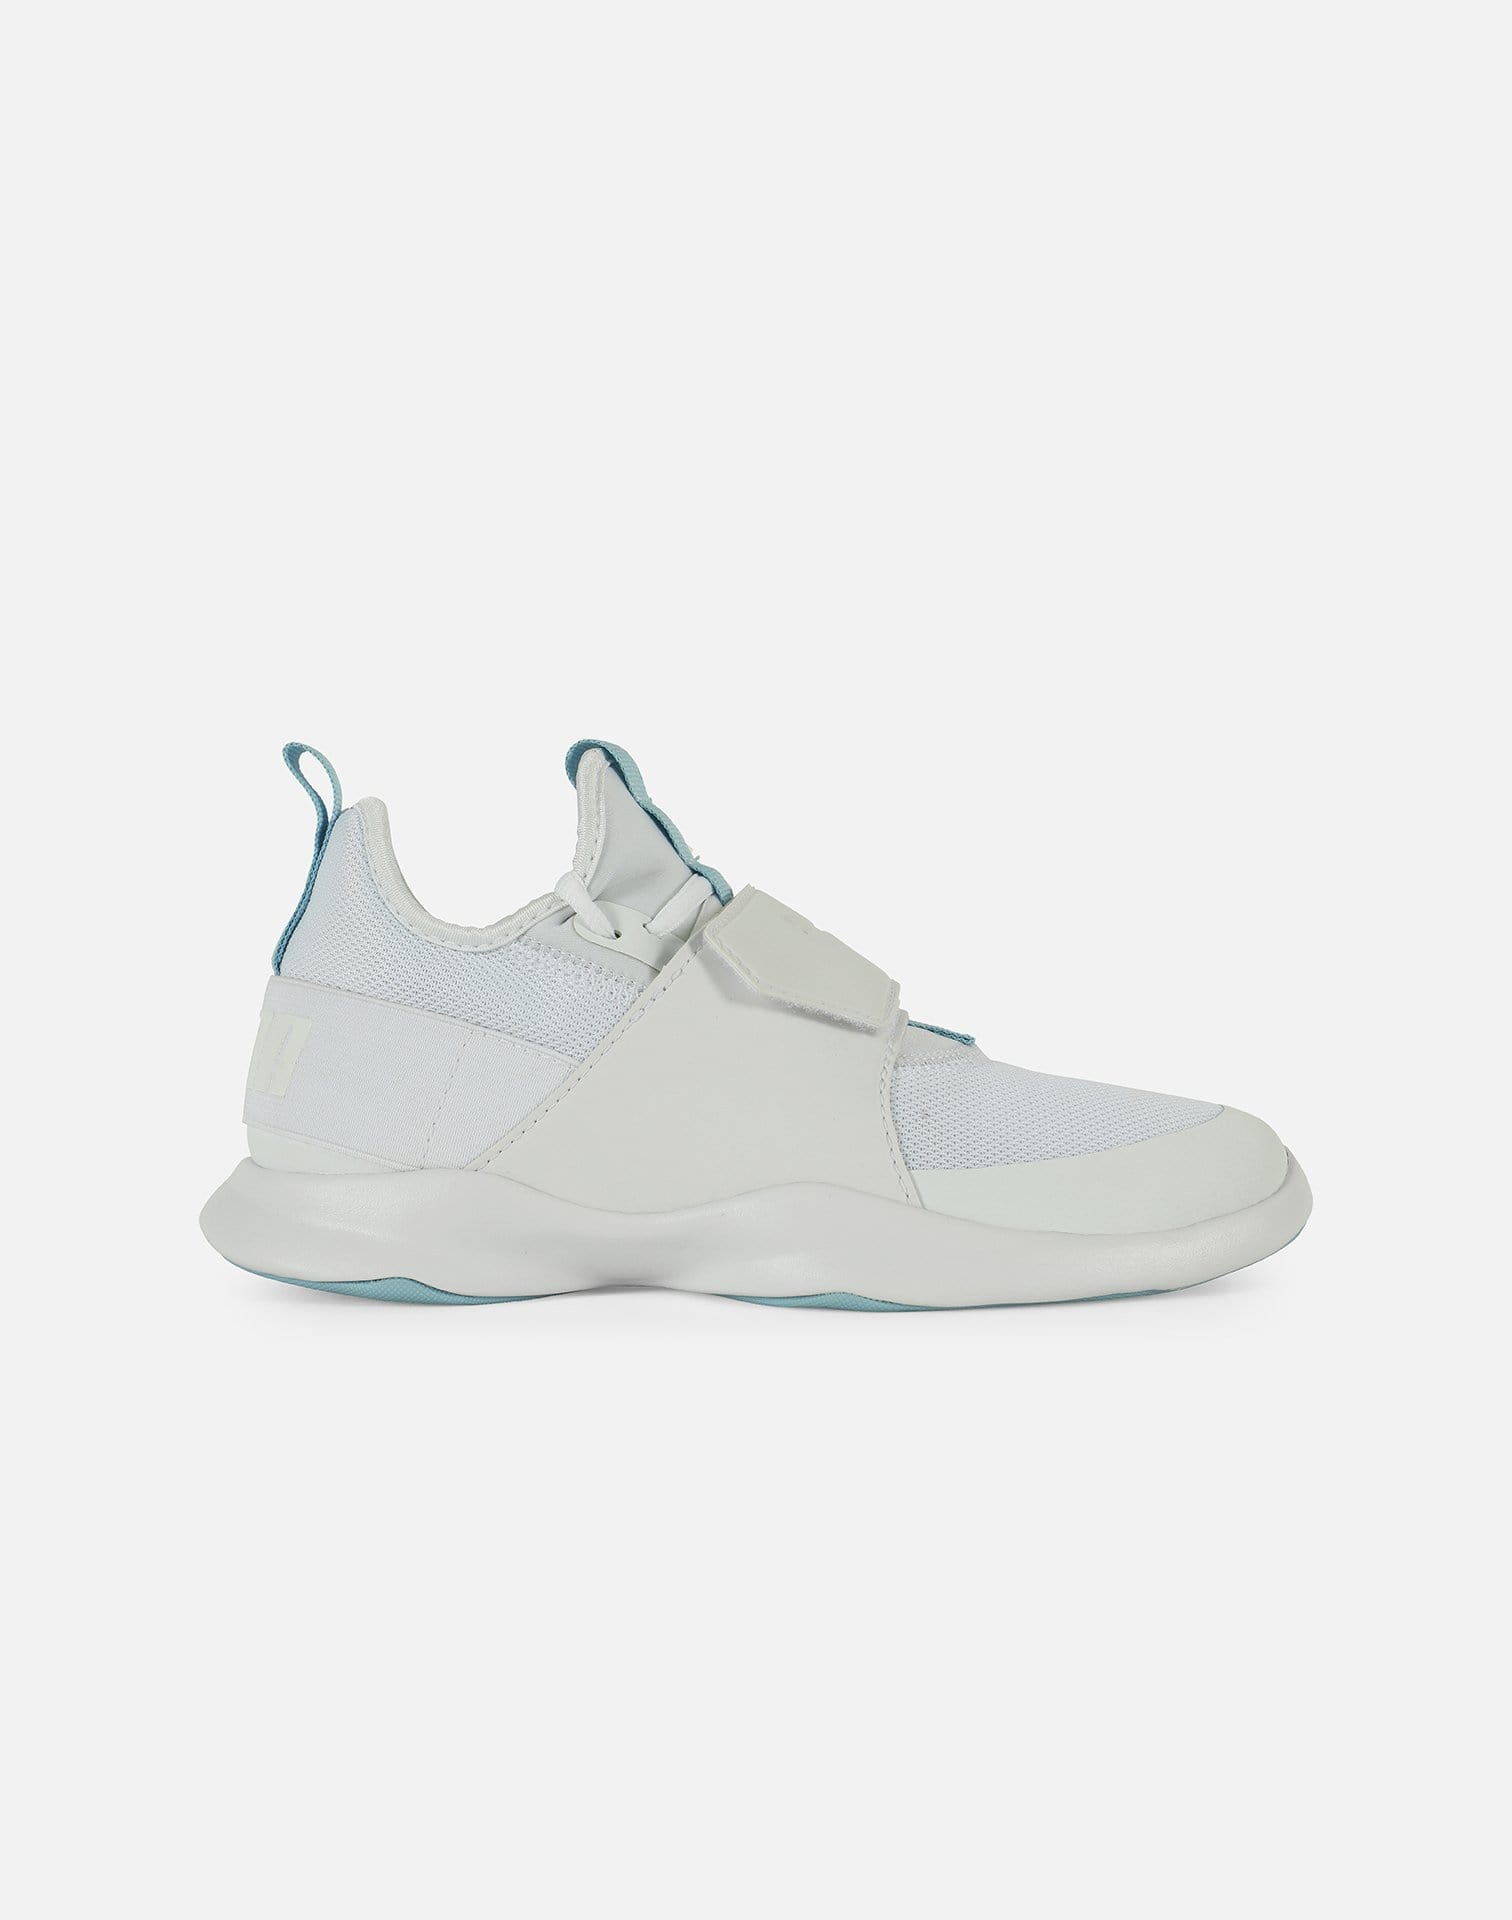 PUMA Women's Dare Trainer